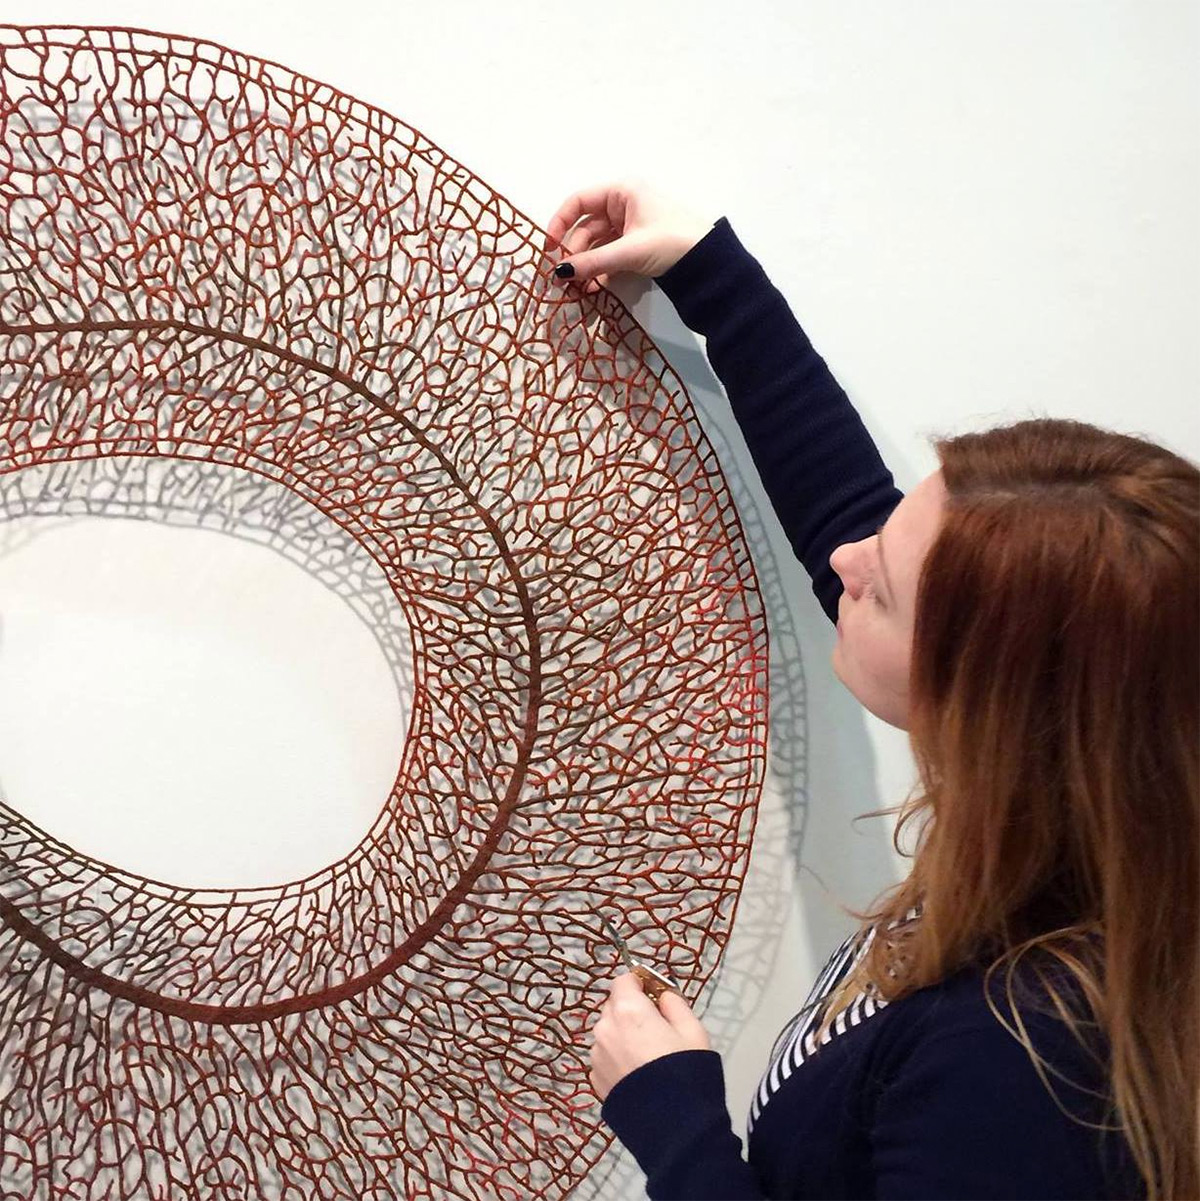 Australian artist Meredith Woolnough creates elaborate embroideries that mimic delicate forms of nat